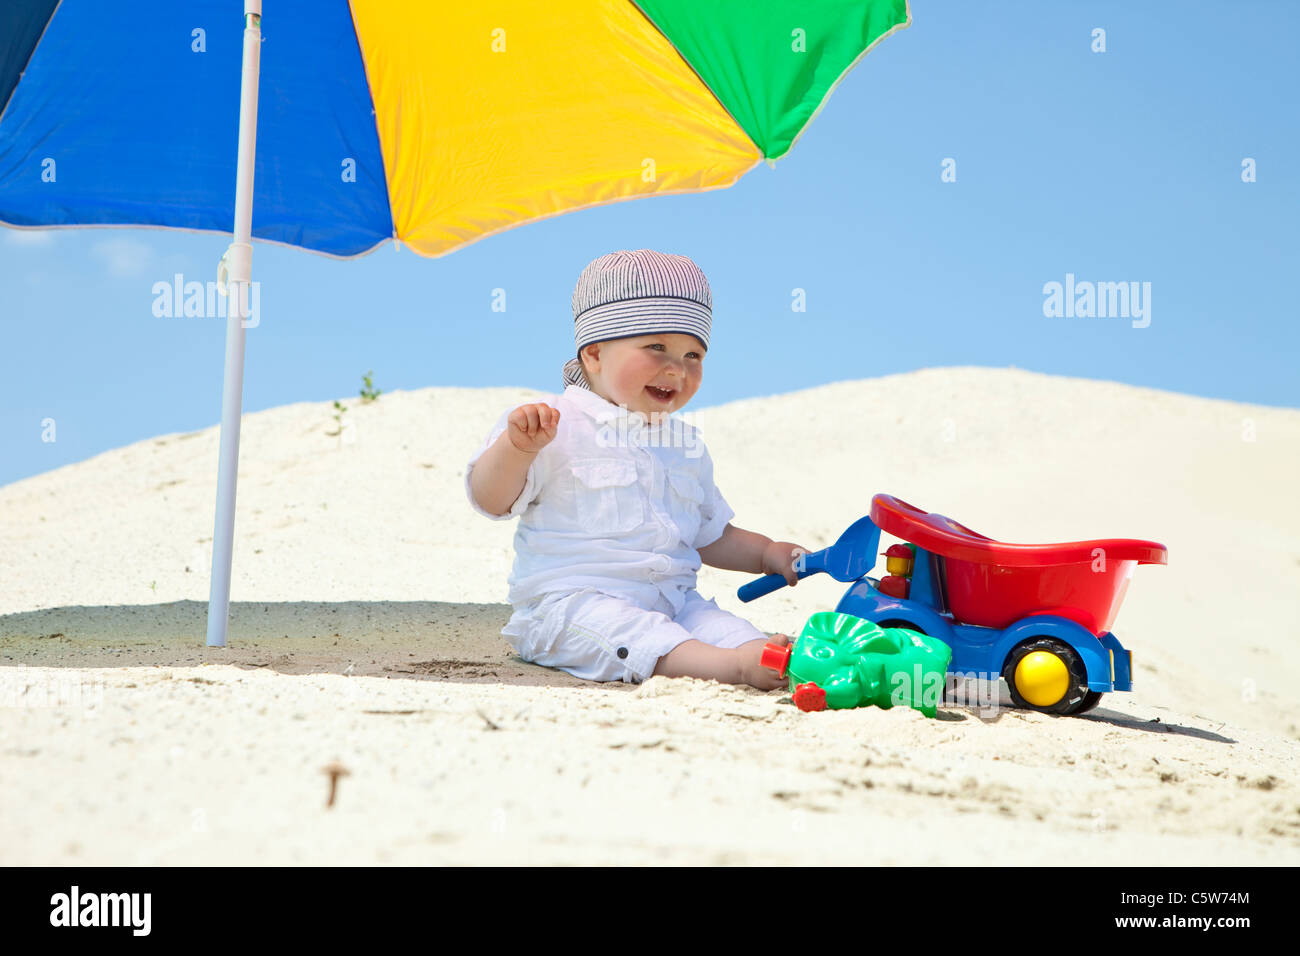 Germany, baby boy (9 months) playing on beach - Stock Image